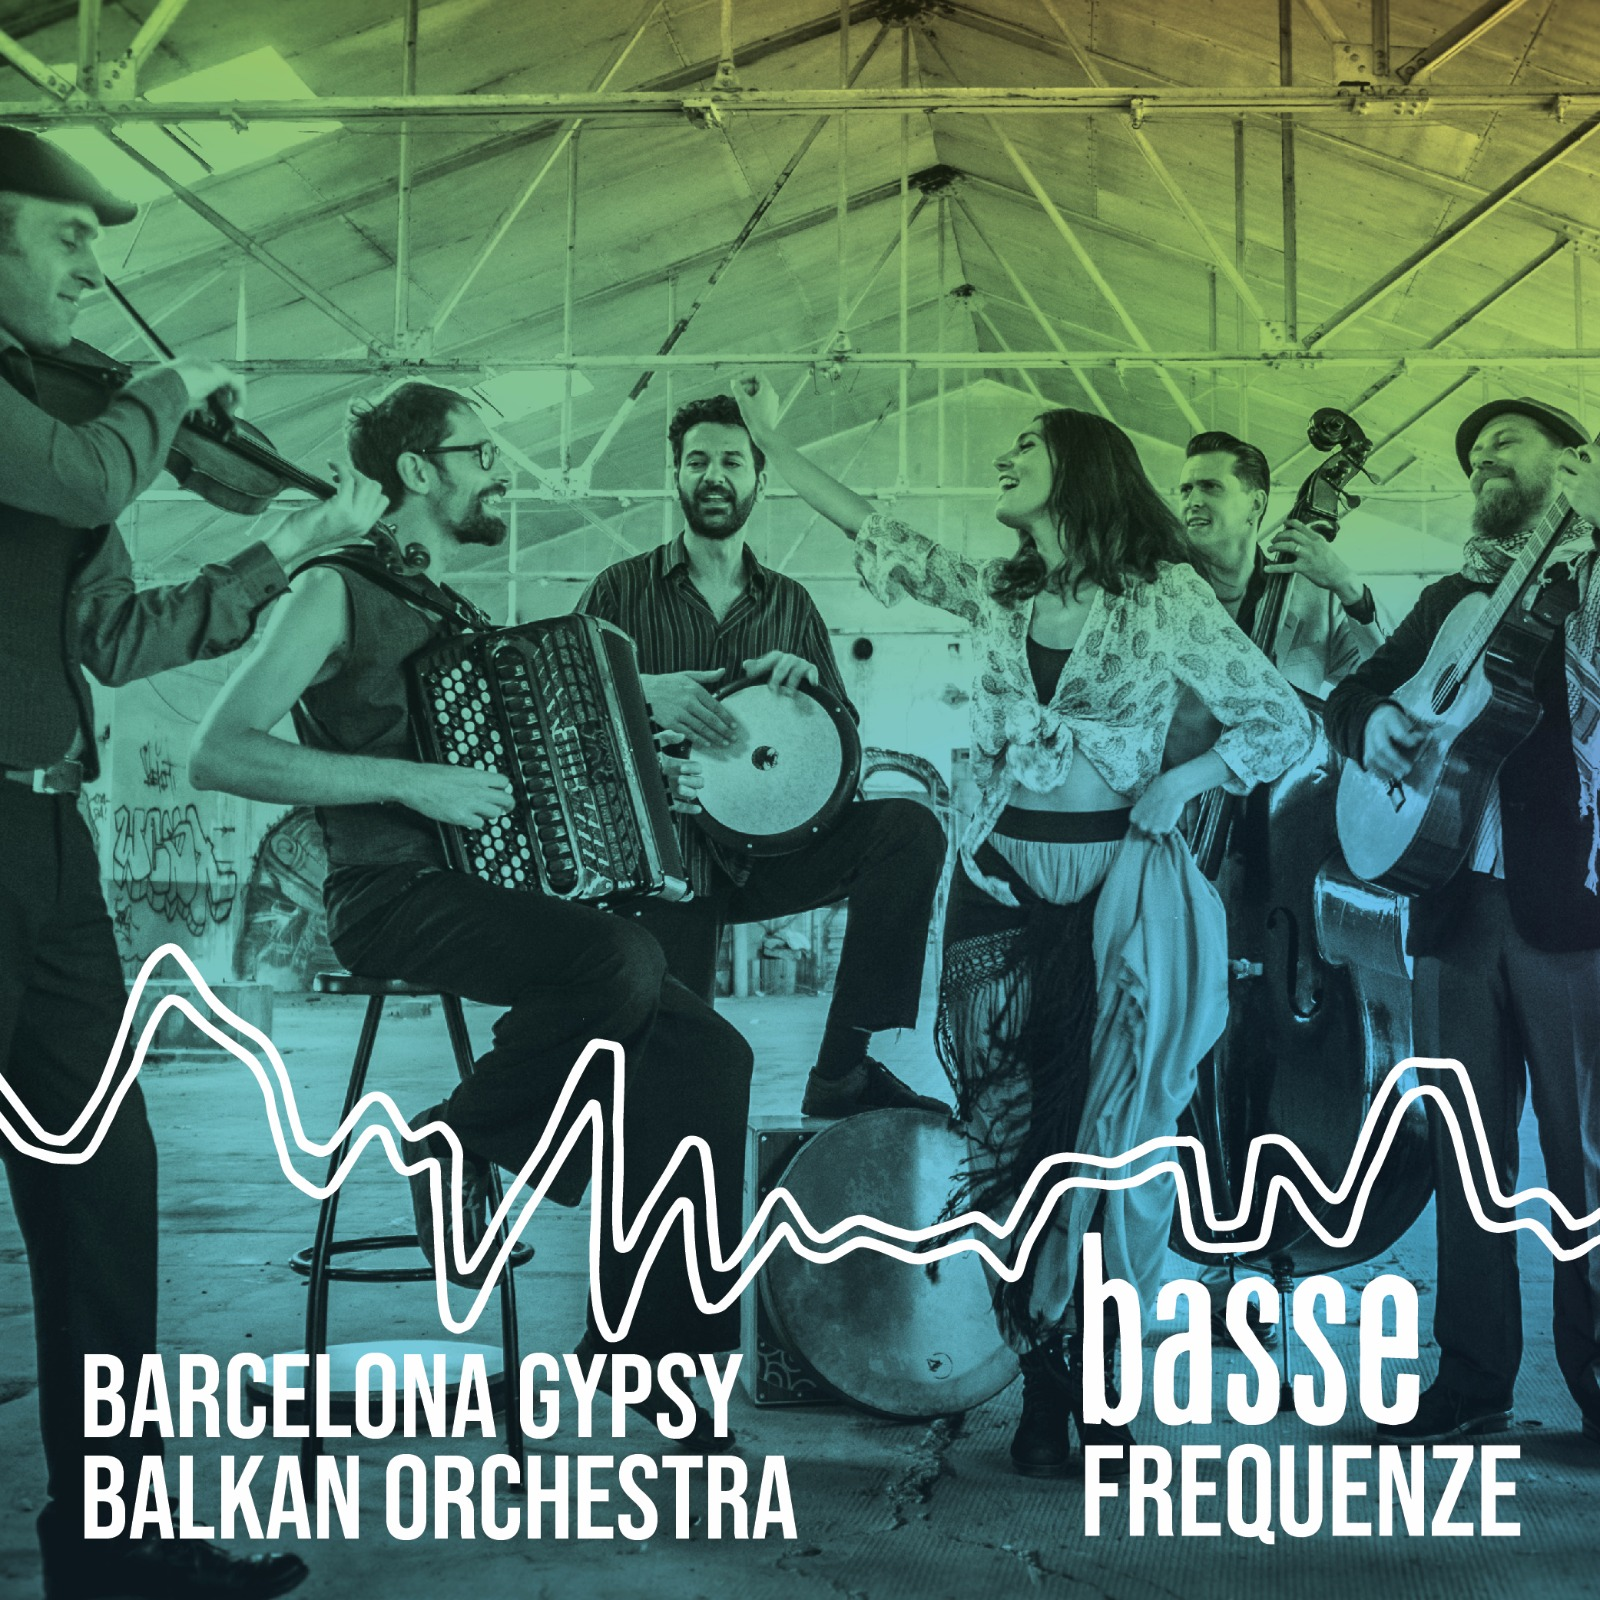 BASSE FREQUENZE #2: BARCELONA GIPSY BALKAN ORCHESTRA + ...